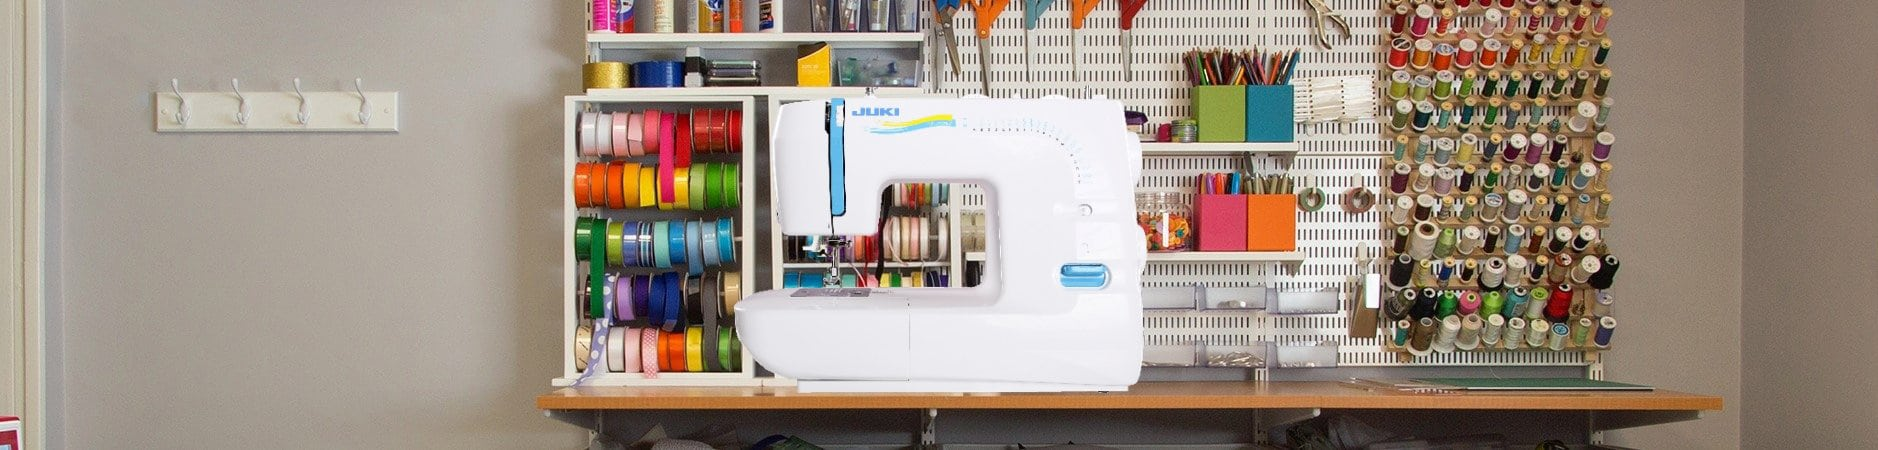 Best Juki Sewing Machines